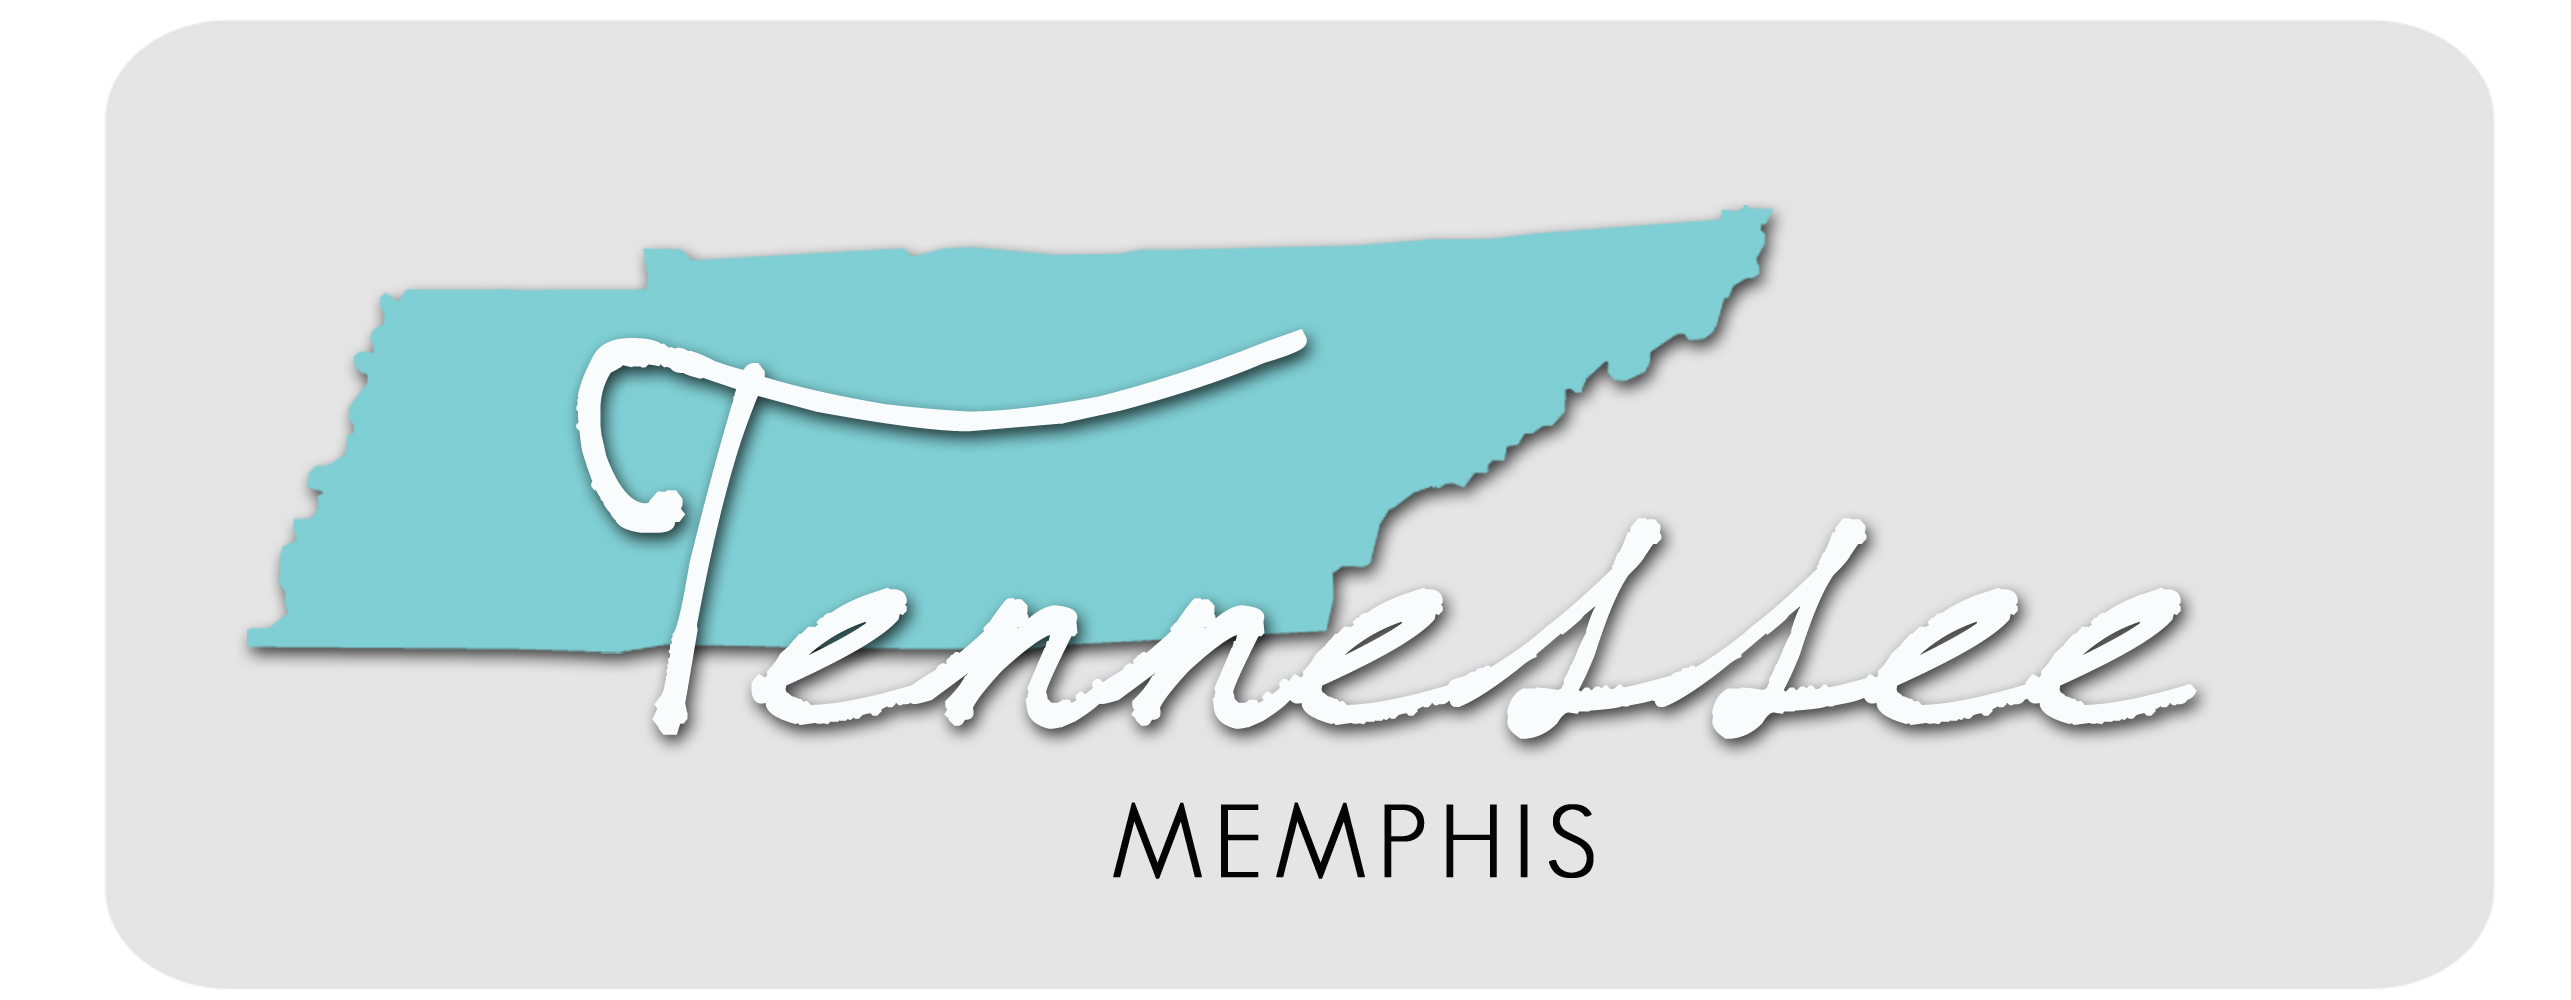 Memphis health insurance